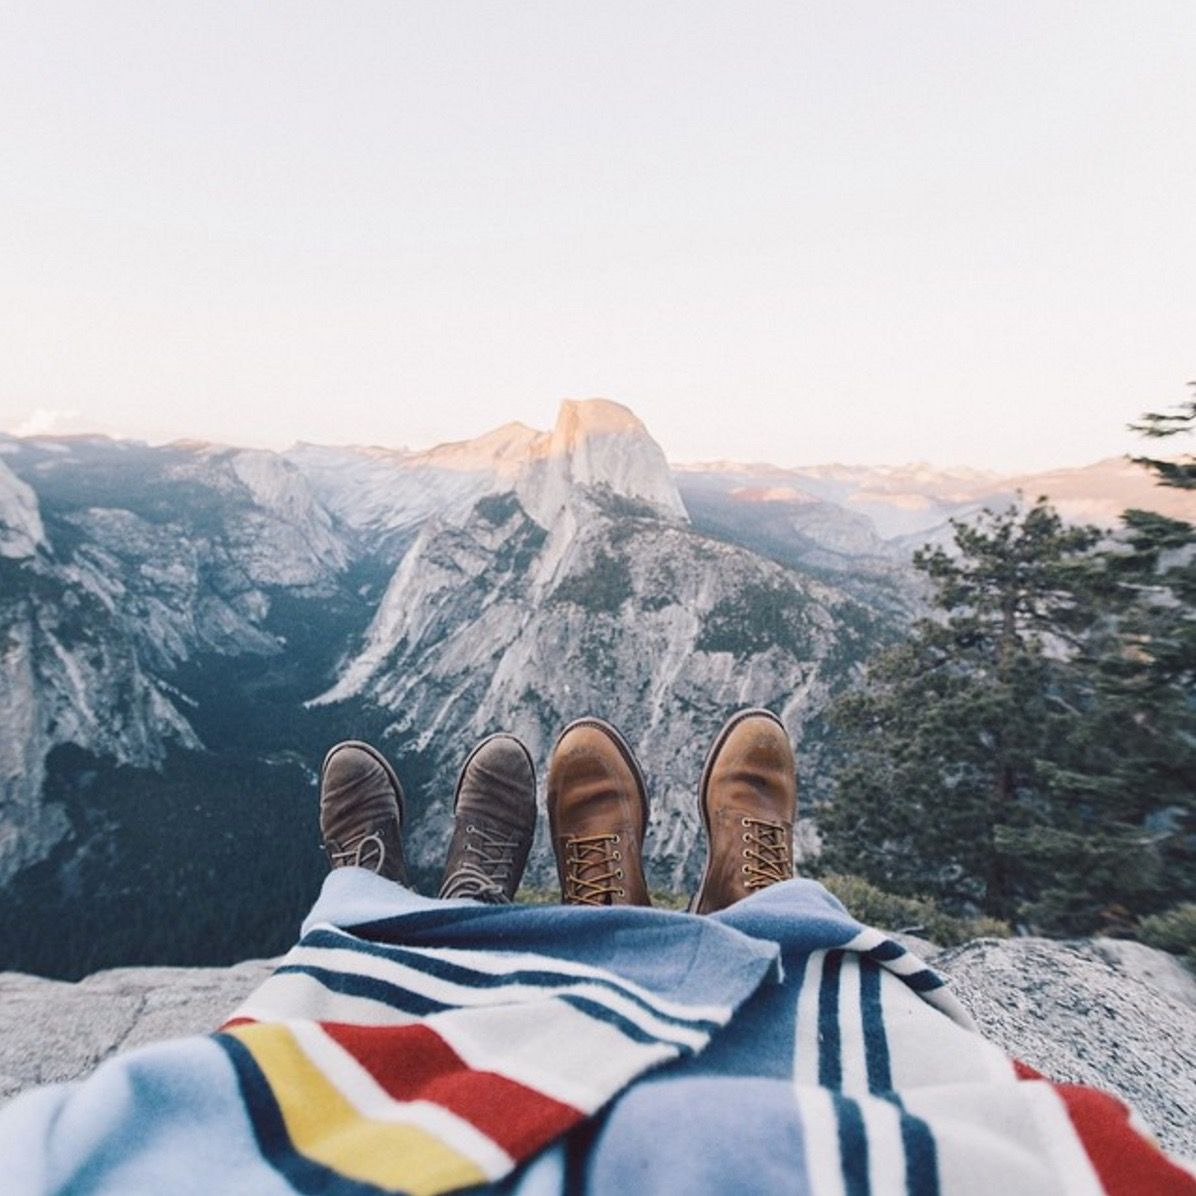 5 Essentials for the Perfect Camping Trip - The Everygirl